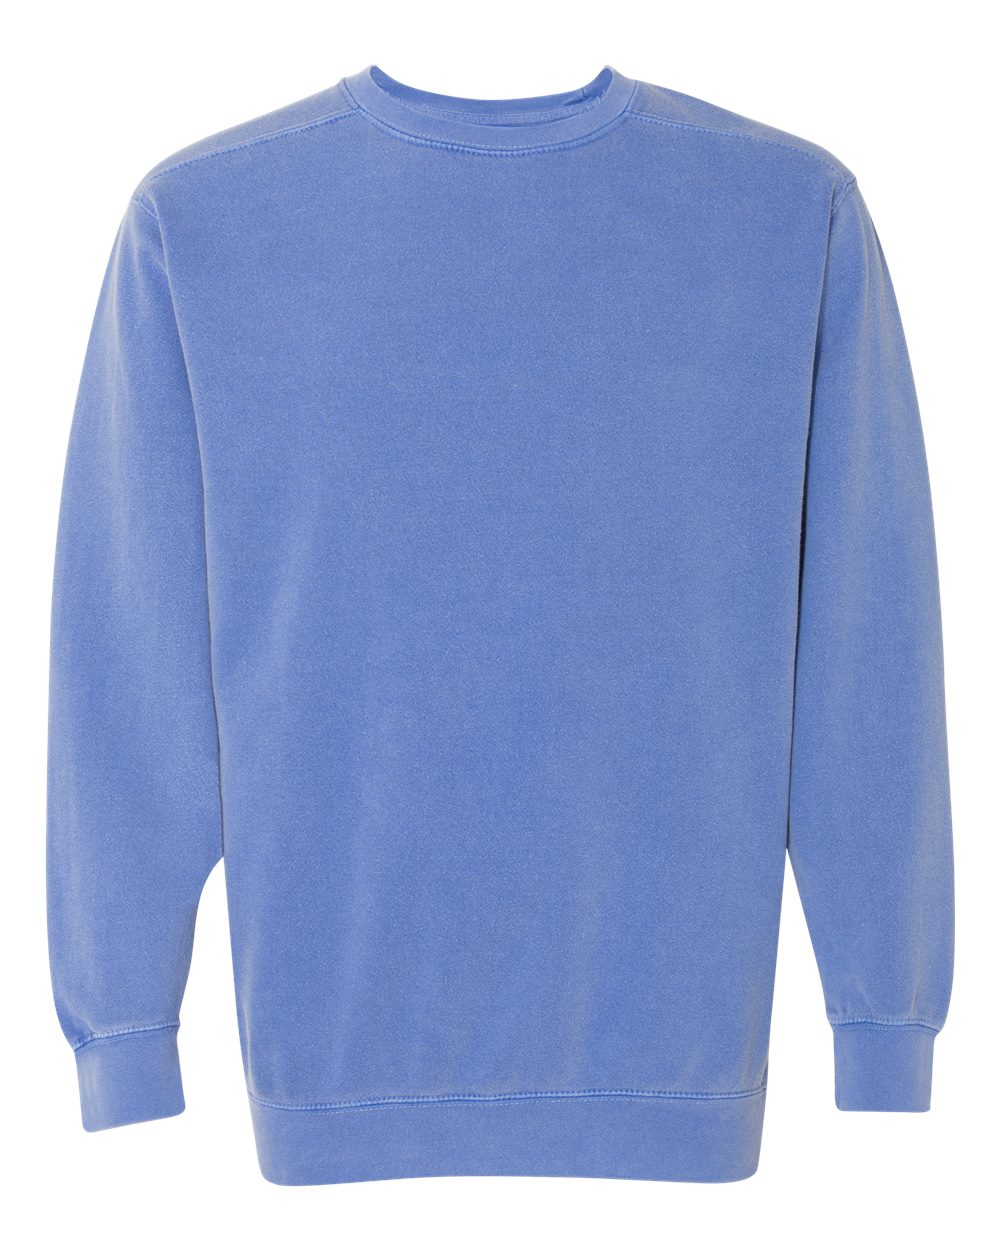 Comfort-Colors-Mens-Garment-Dyed-Ringspun-Crewneck-Sweatshirt-1566-up-to-3XL miniature 30